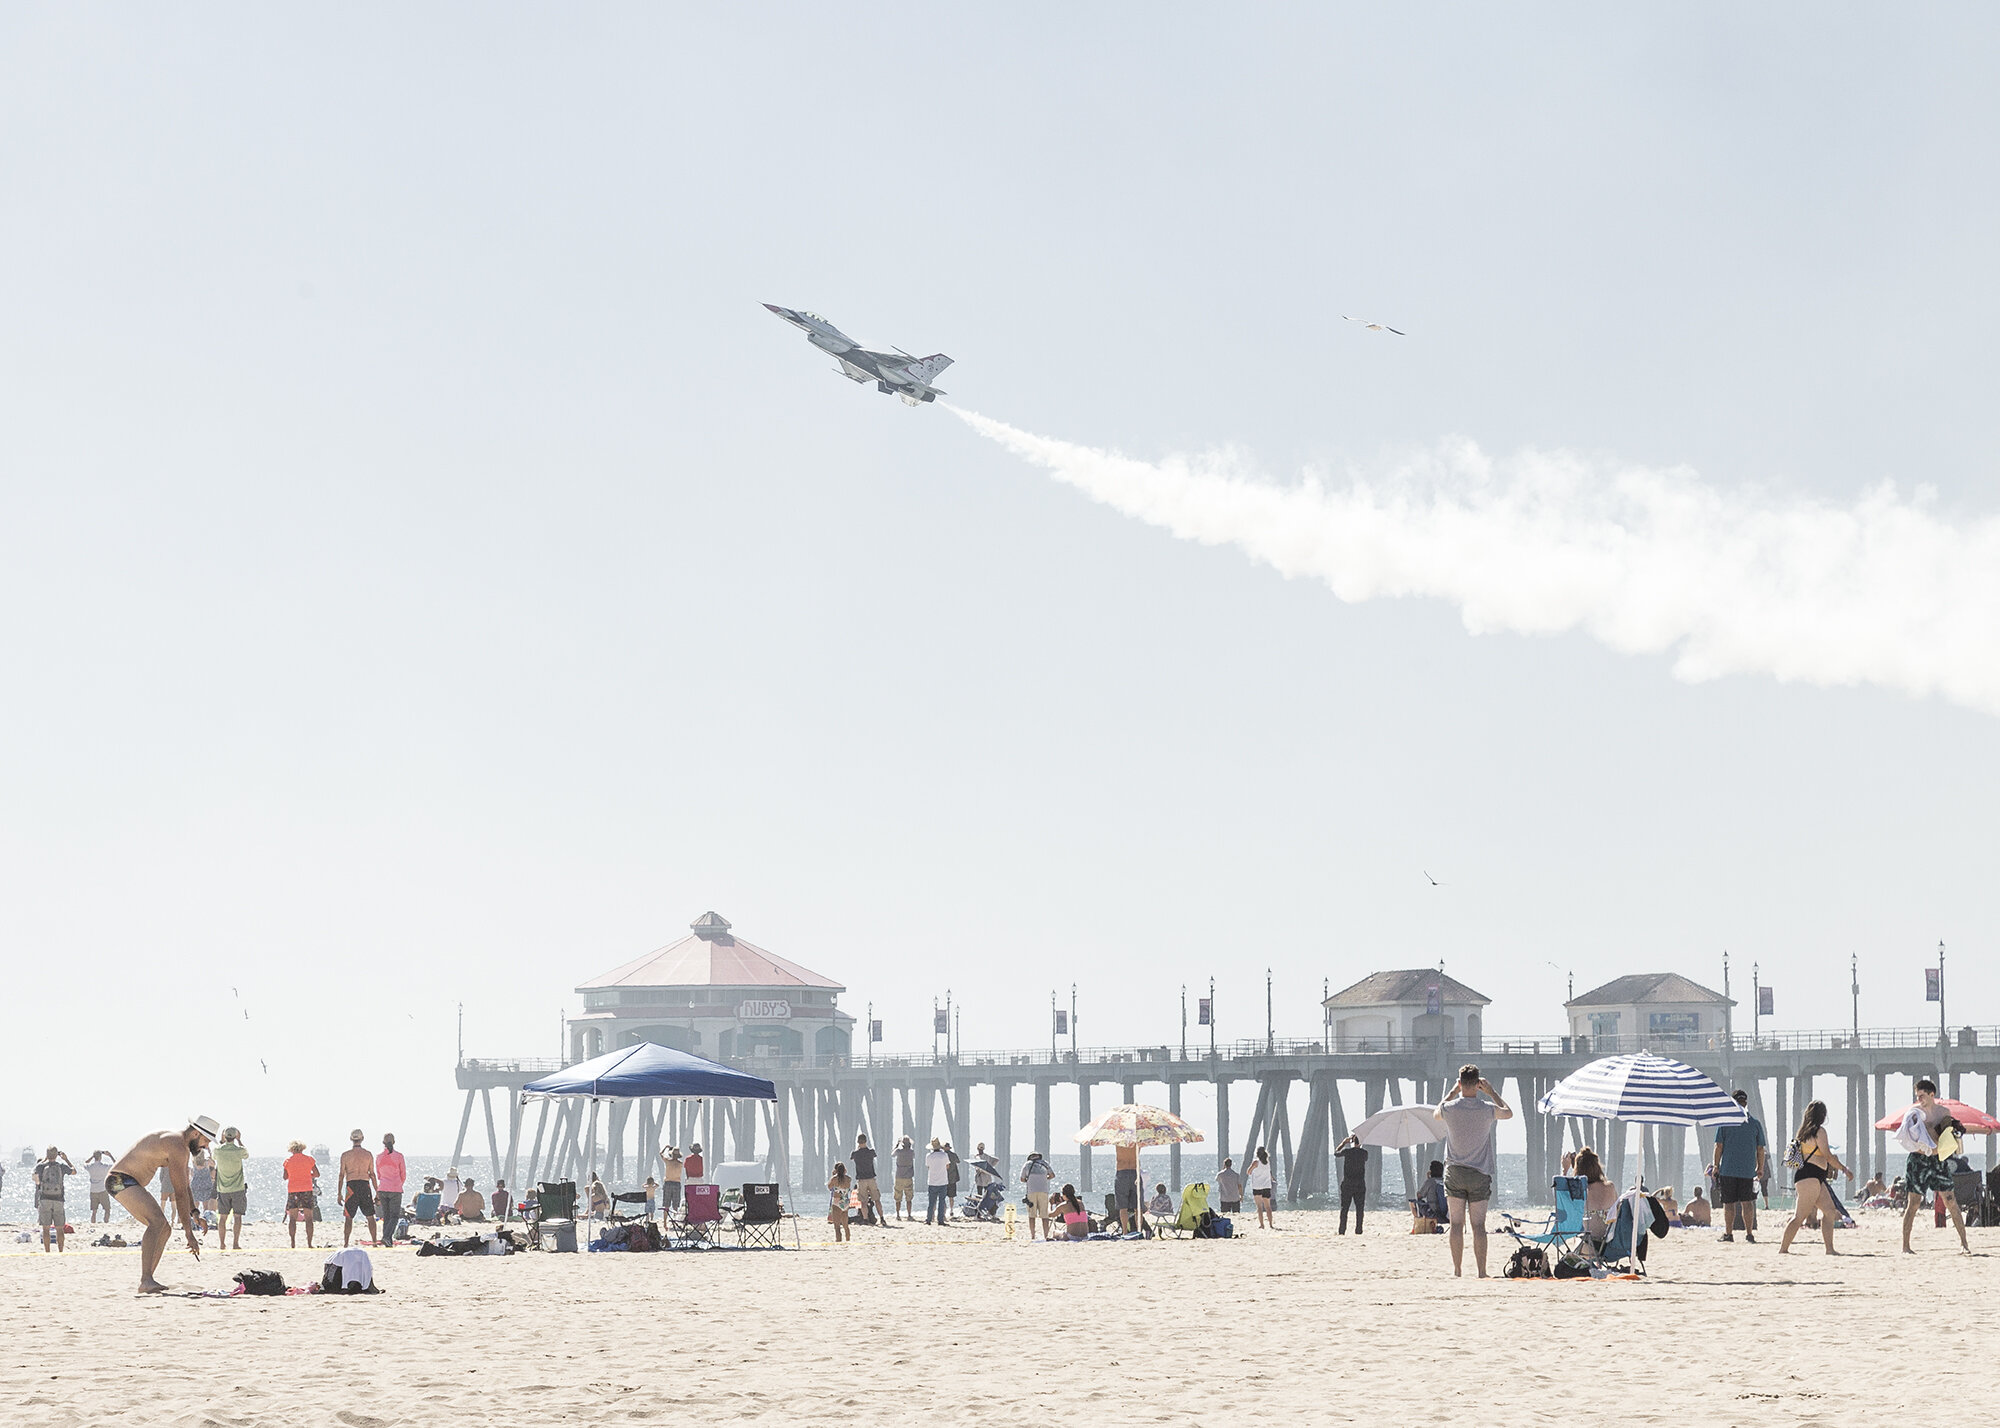 The Great Pacific Airshow 2019 -3.jpg